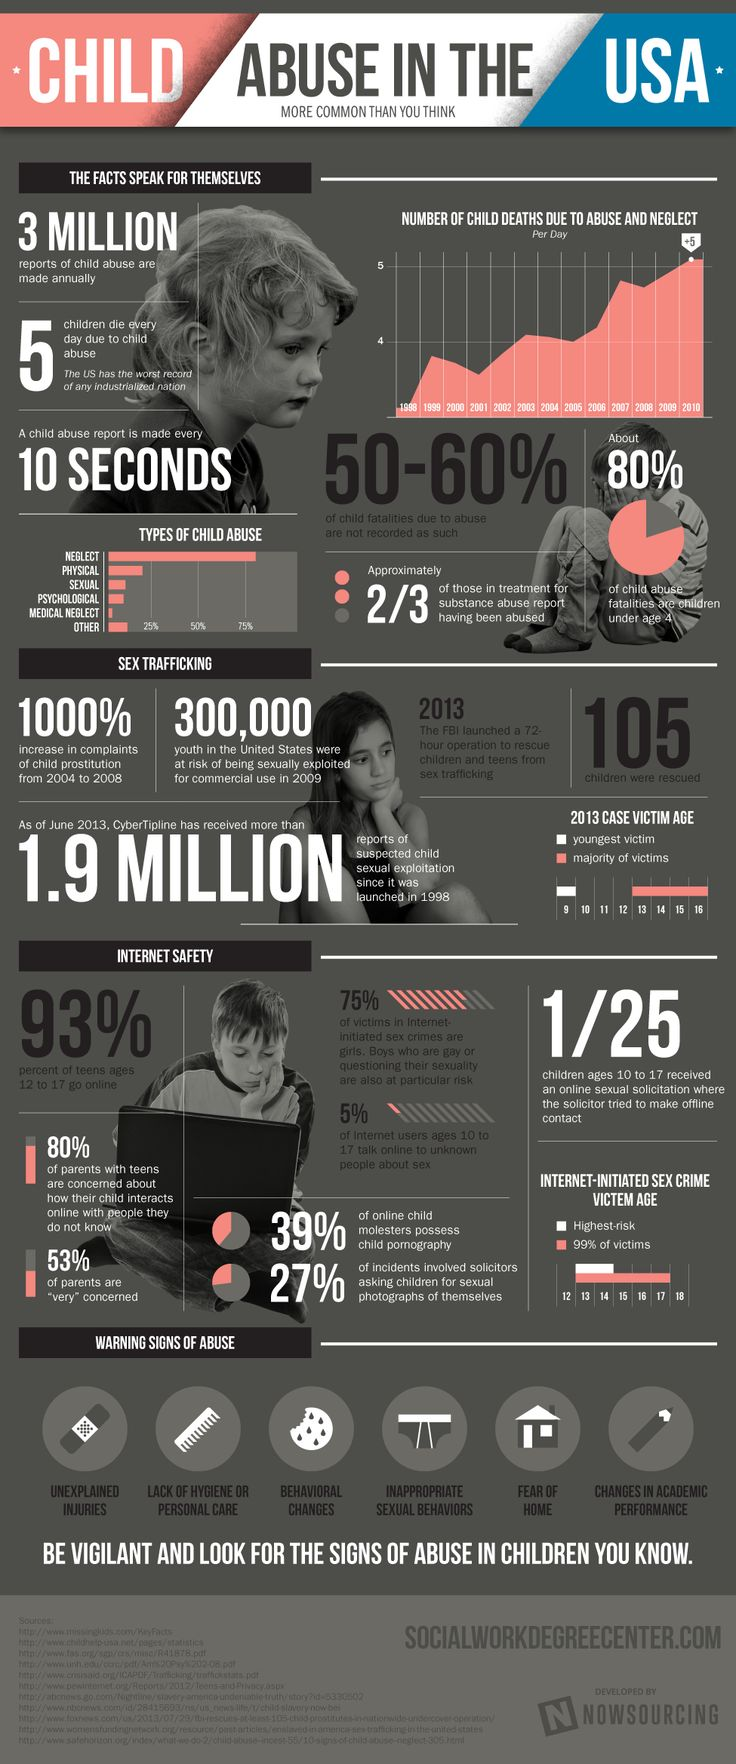 Child abuse is more common in the United States than you may think—the facts speak for themselves. There are three million annual reports of child abuse, with one being made every 10 seconds. Five children die every single day due to child abuse. It's unacceptable that the U.S. has the worst record of any industrialized nation. Potentially over half of child fatalities due to abuse are not even recorded as such—and over 80 percent of fatalities involve children under the age of four.